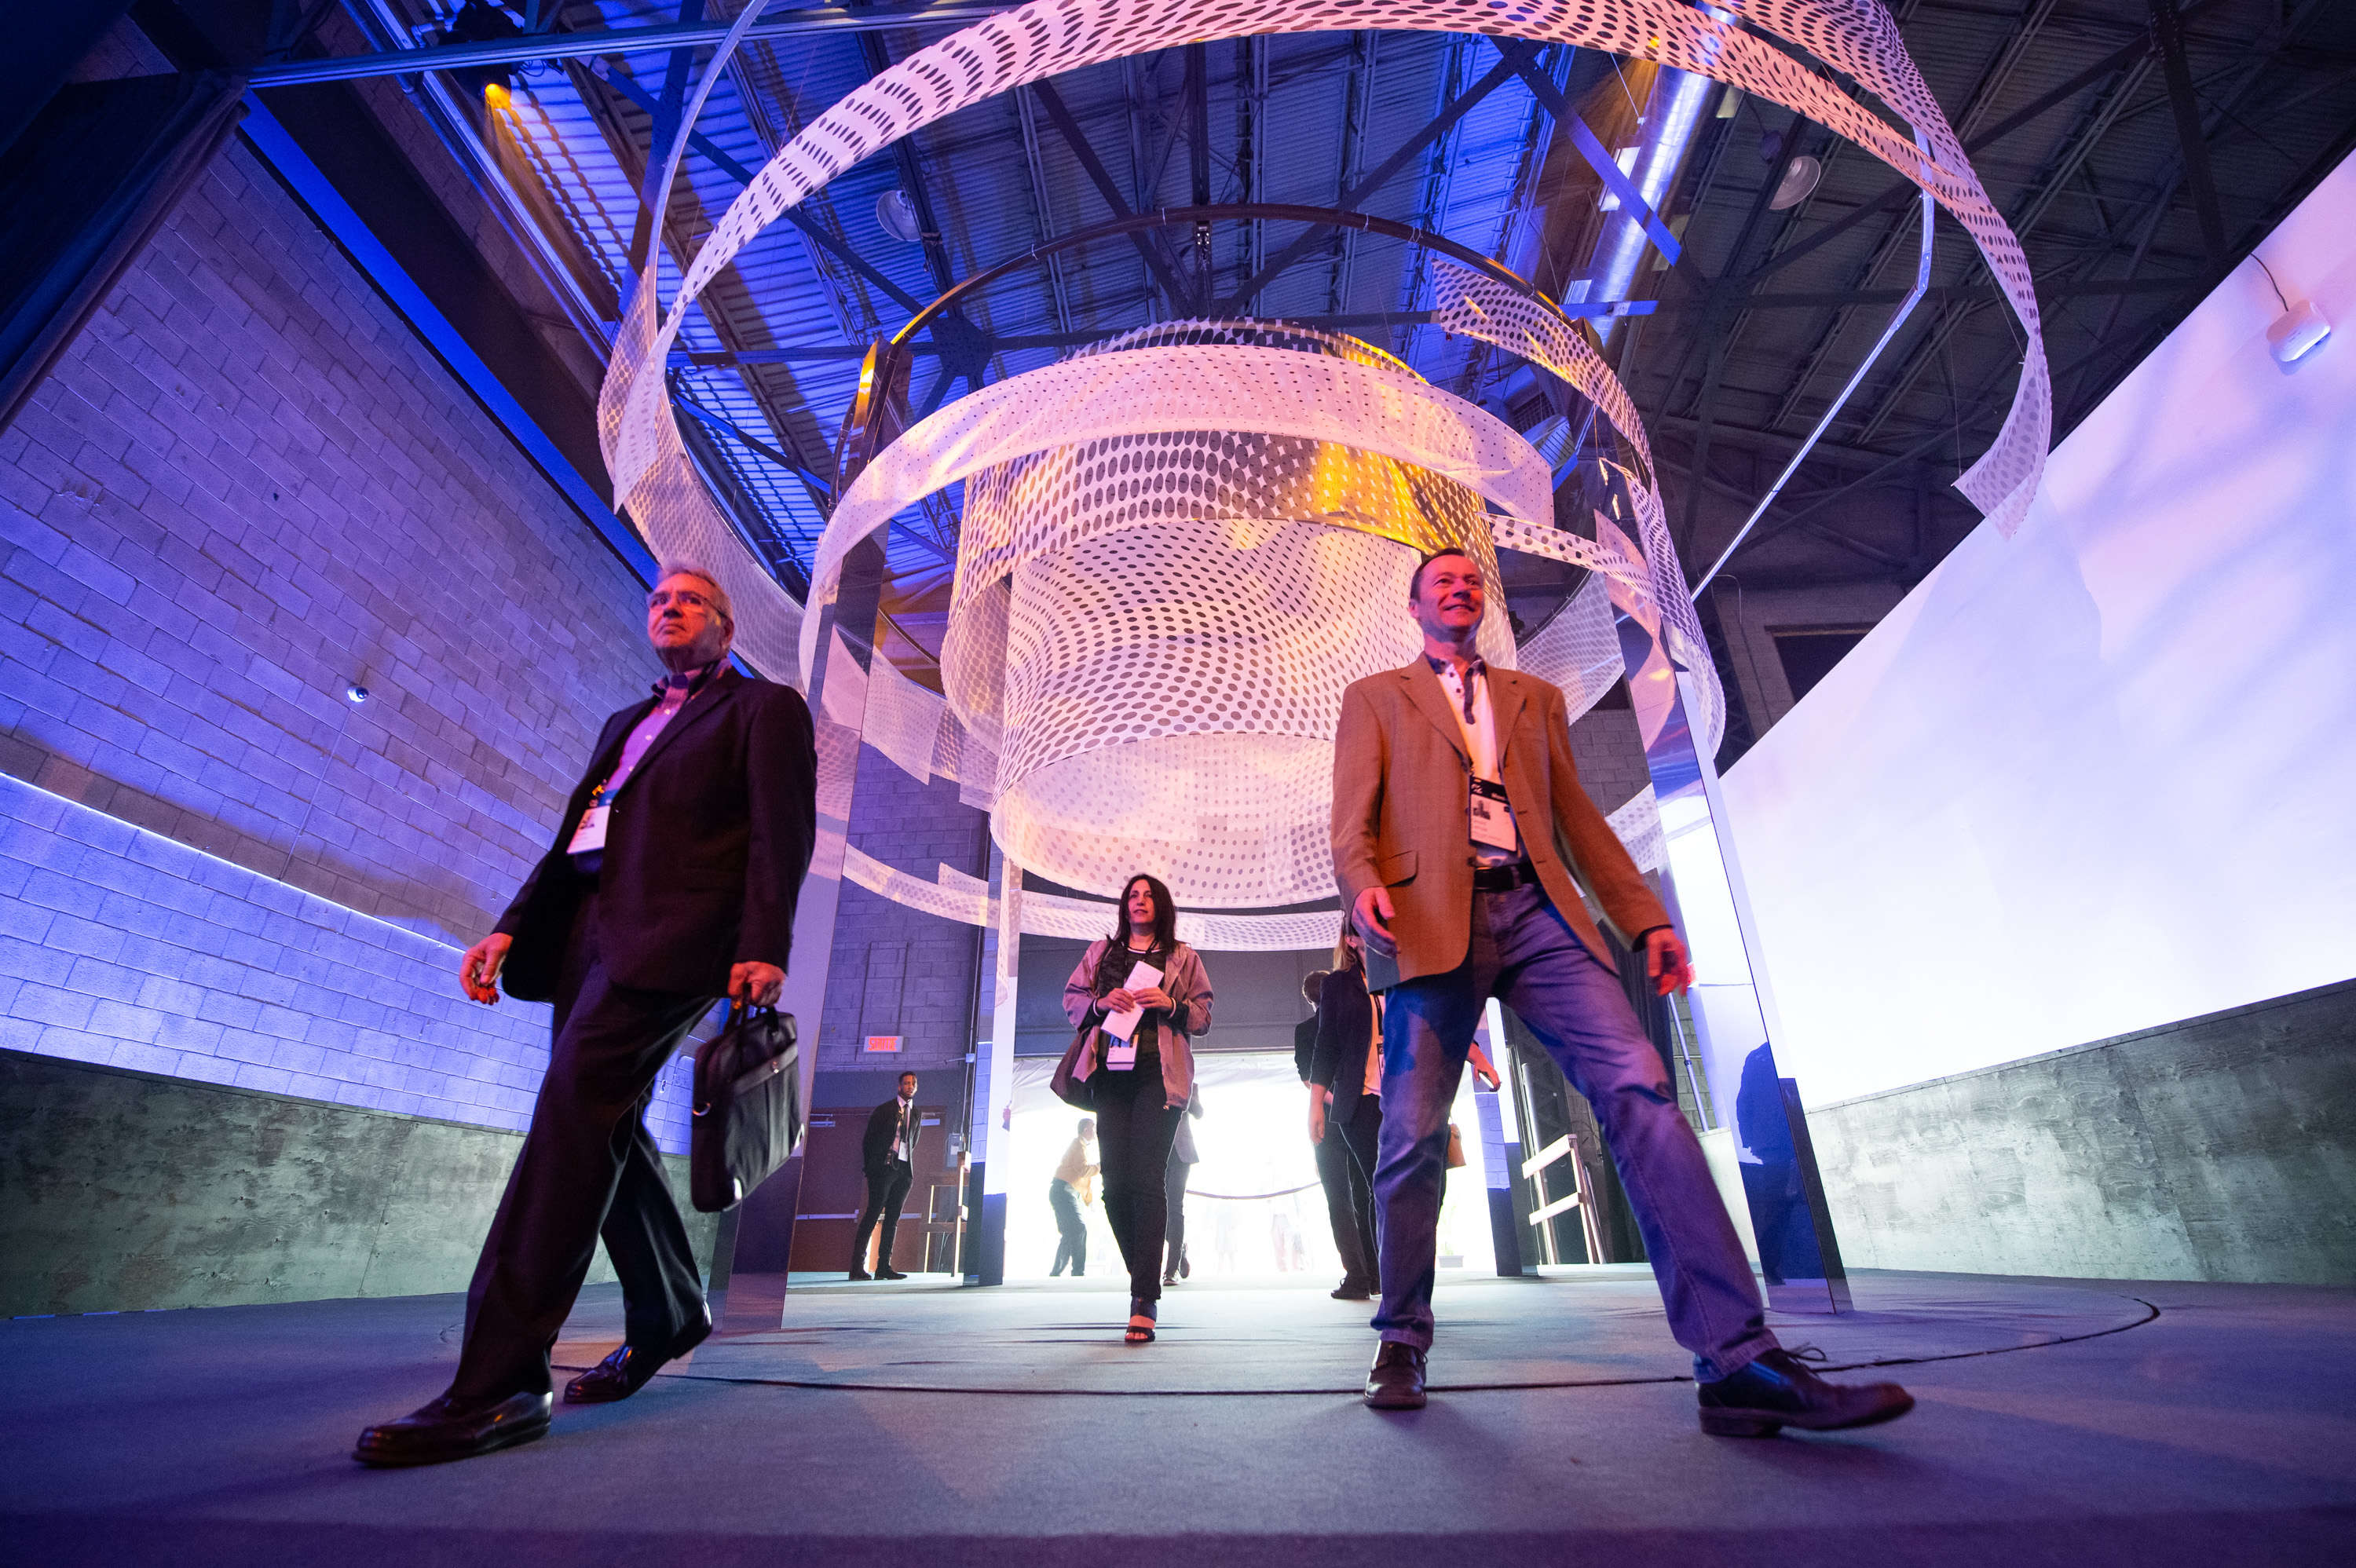 C2 Montreal: a festival of ideas